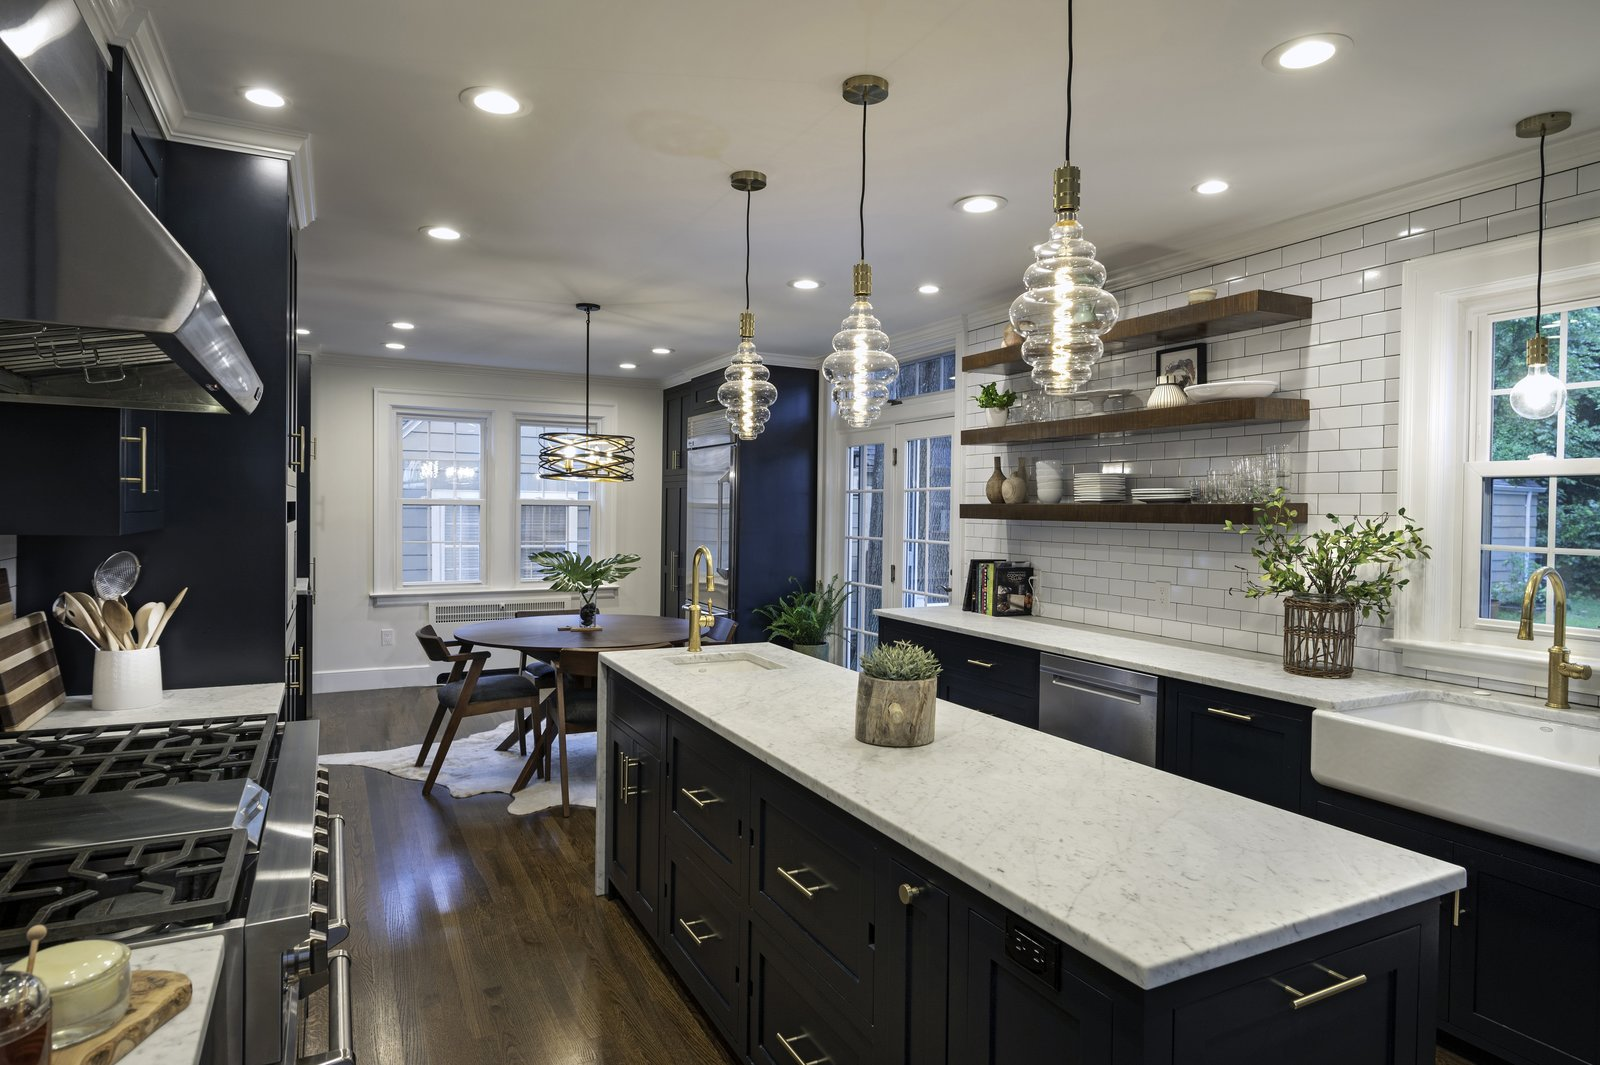 Westville Bold Classic Kitchen by Design by the Jonathans - Dwell